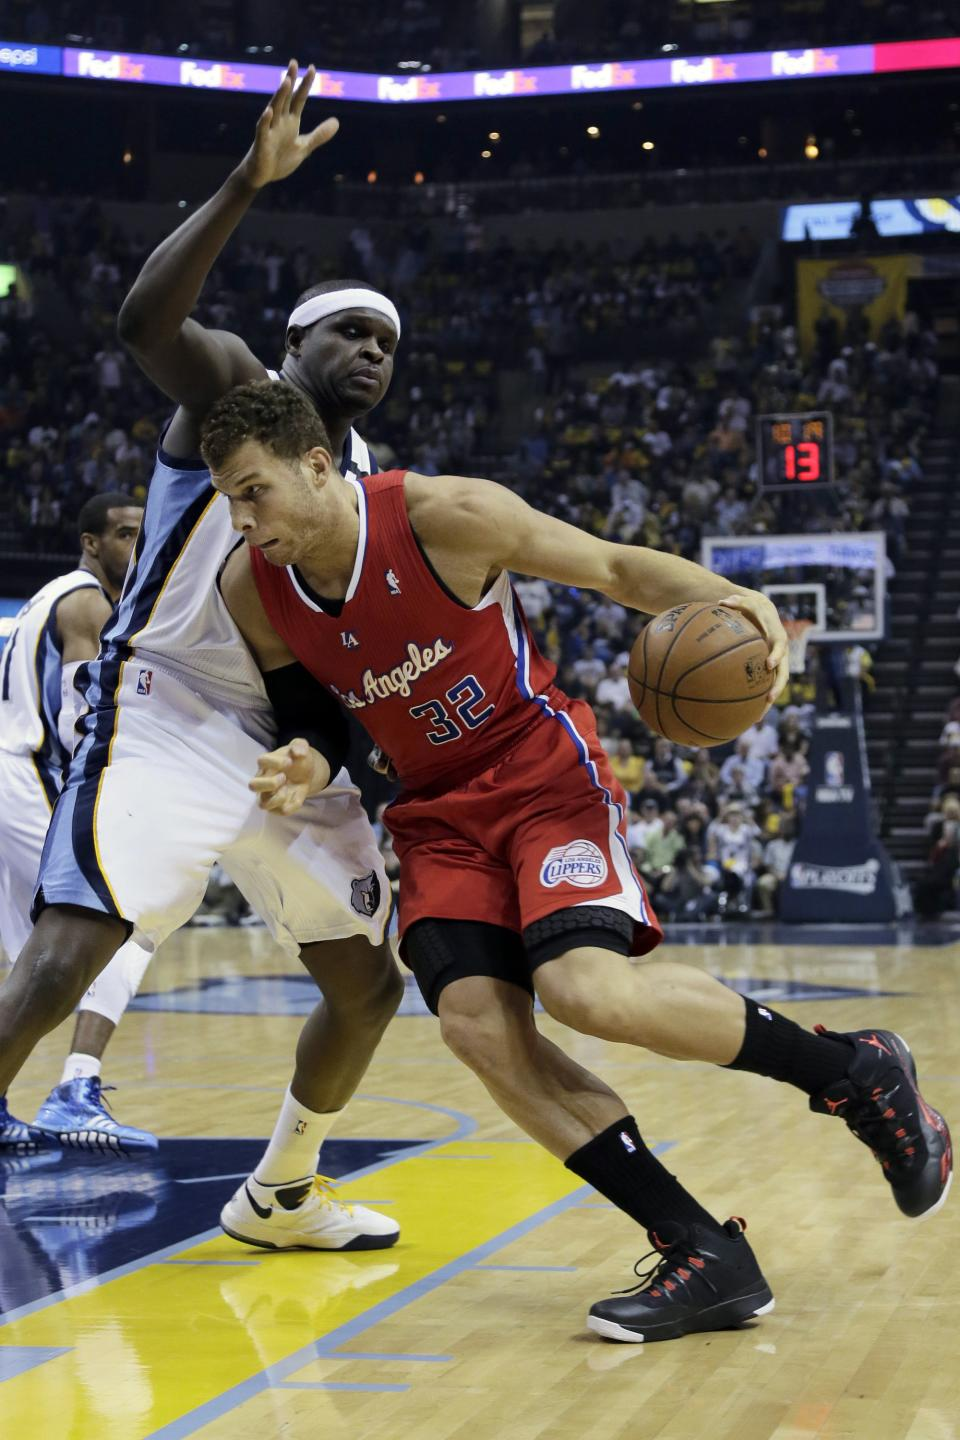 Memphis Grizzlies' Zach Randolph, left, defends against Los Angeles Clippers' Blake Griffin (32) during the first half of Game 4 in a first-round NBA basketball playoff series in Memphis, Tenn., Saturday, April 27, 2013. (AP Photo/Danny Johnston)